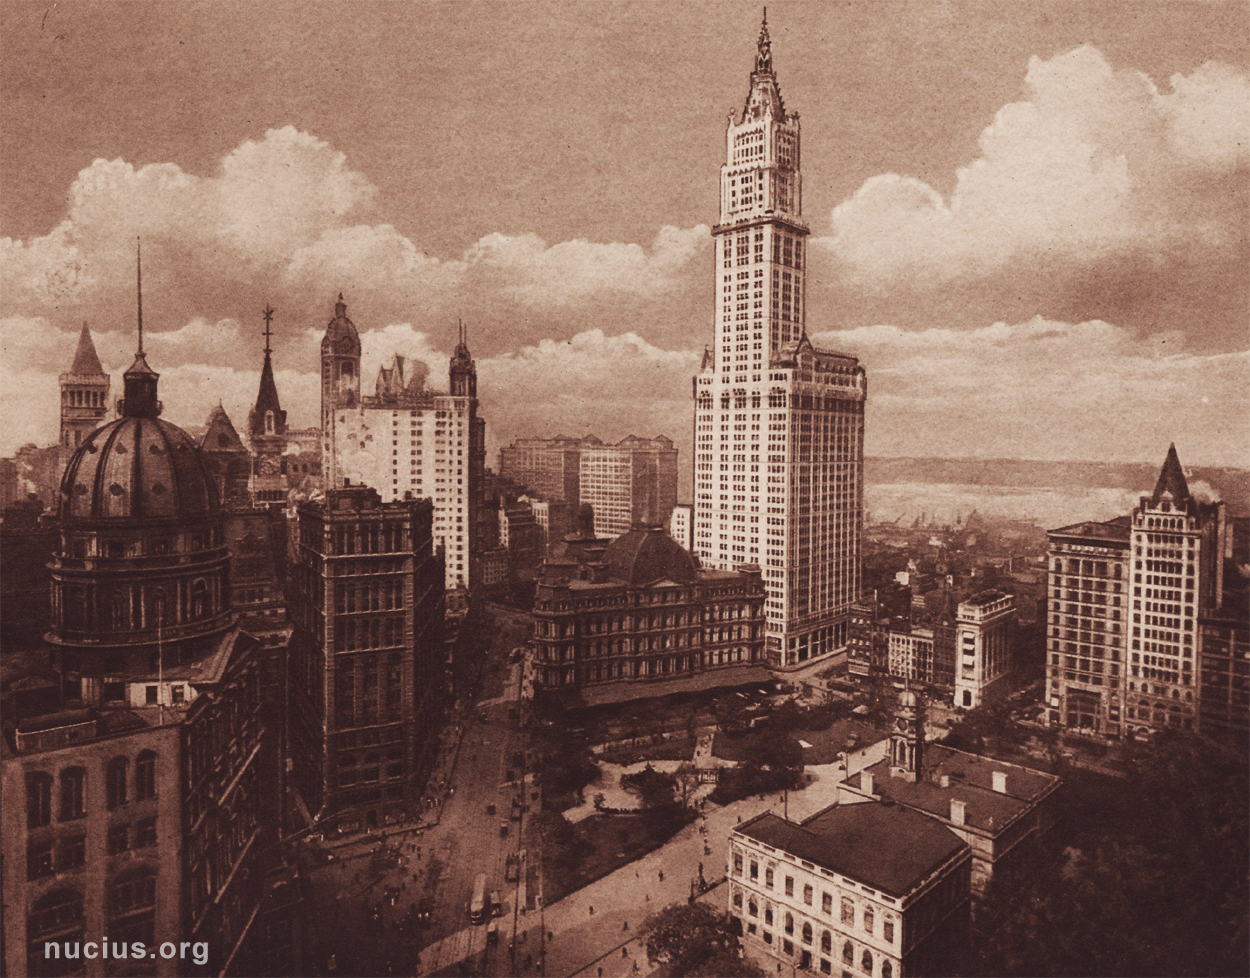 A historic photograph from a souvenir album about New York, found on nucius.org